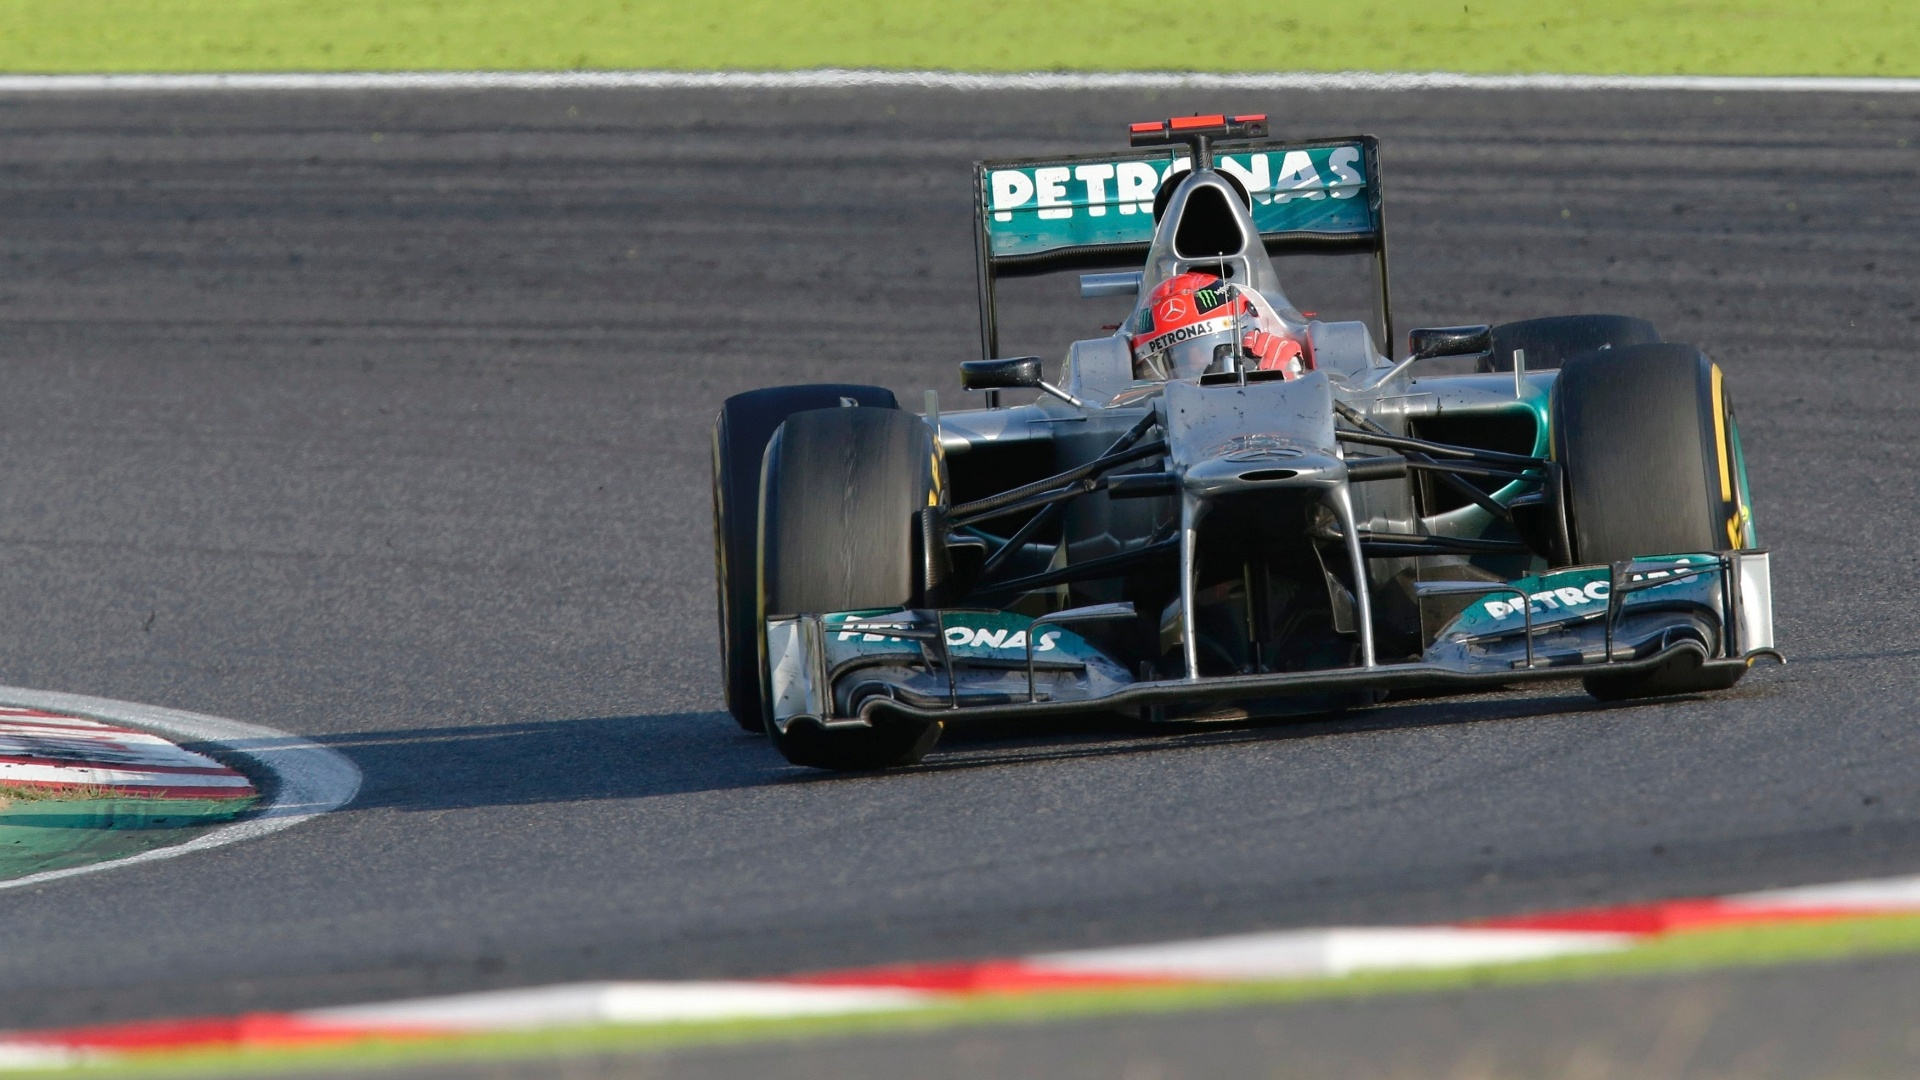 Michael Schumacher pilota sua Mercedes pelo circuito de Suzuka 